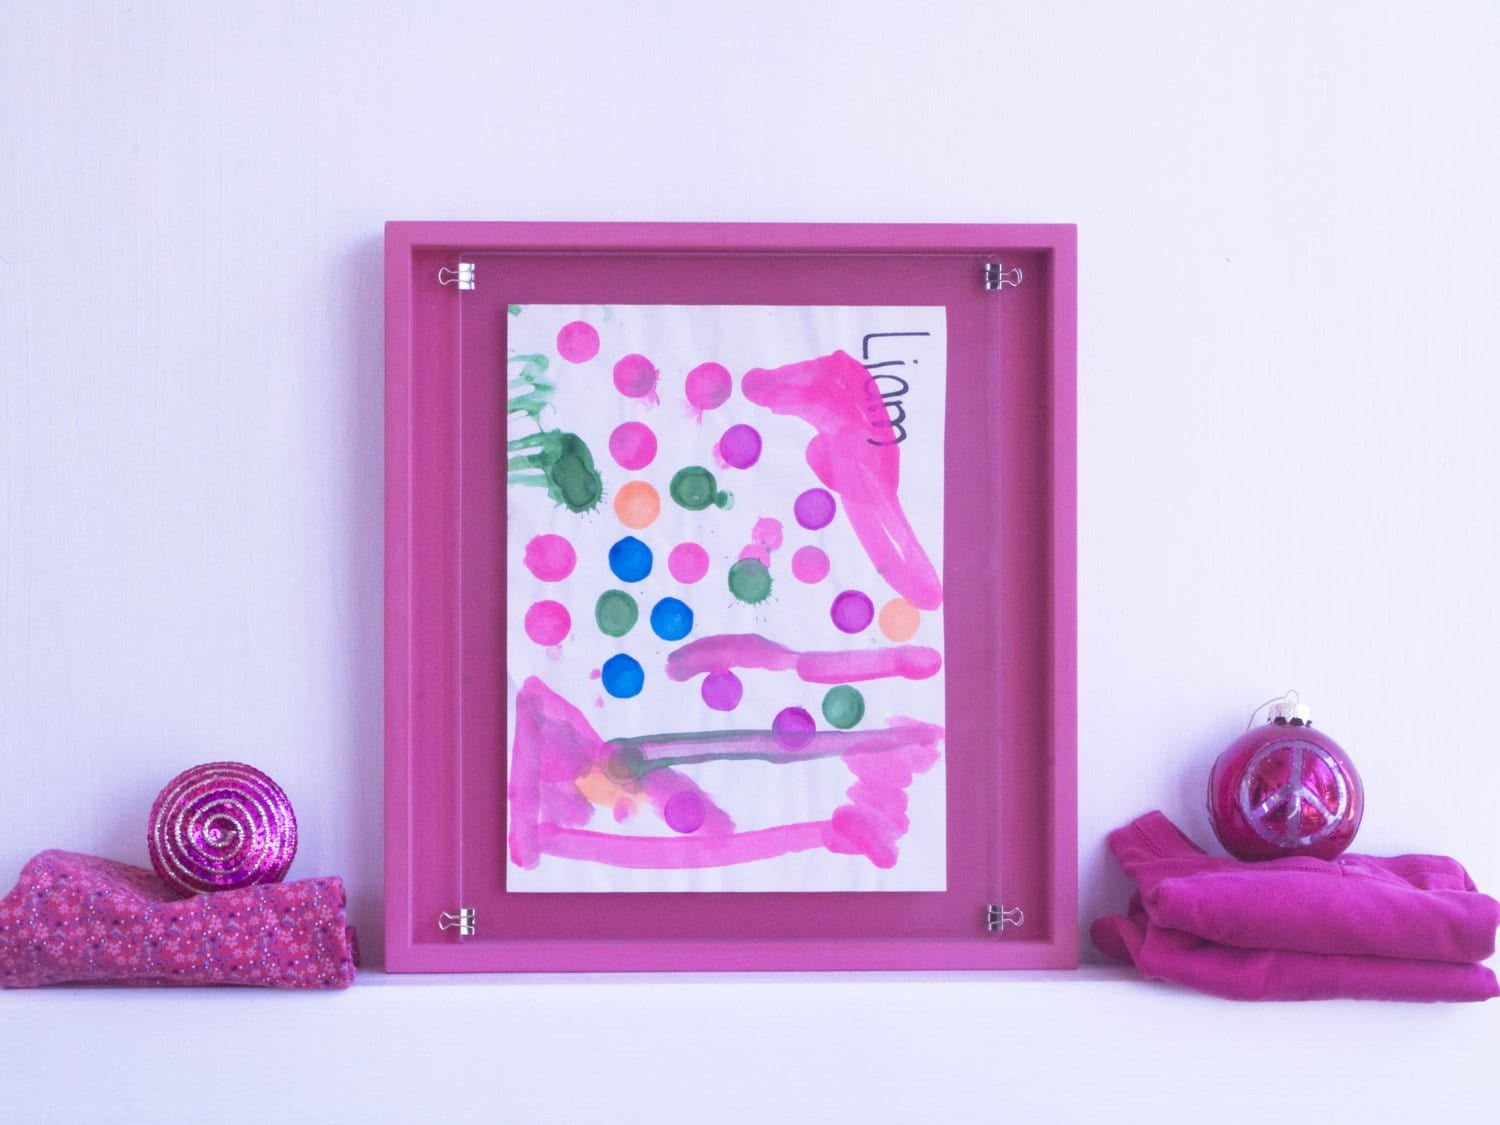 Display frame pink kids children art 11x14 8x10 5x7 front load zoom jeuxipadfo Image collections